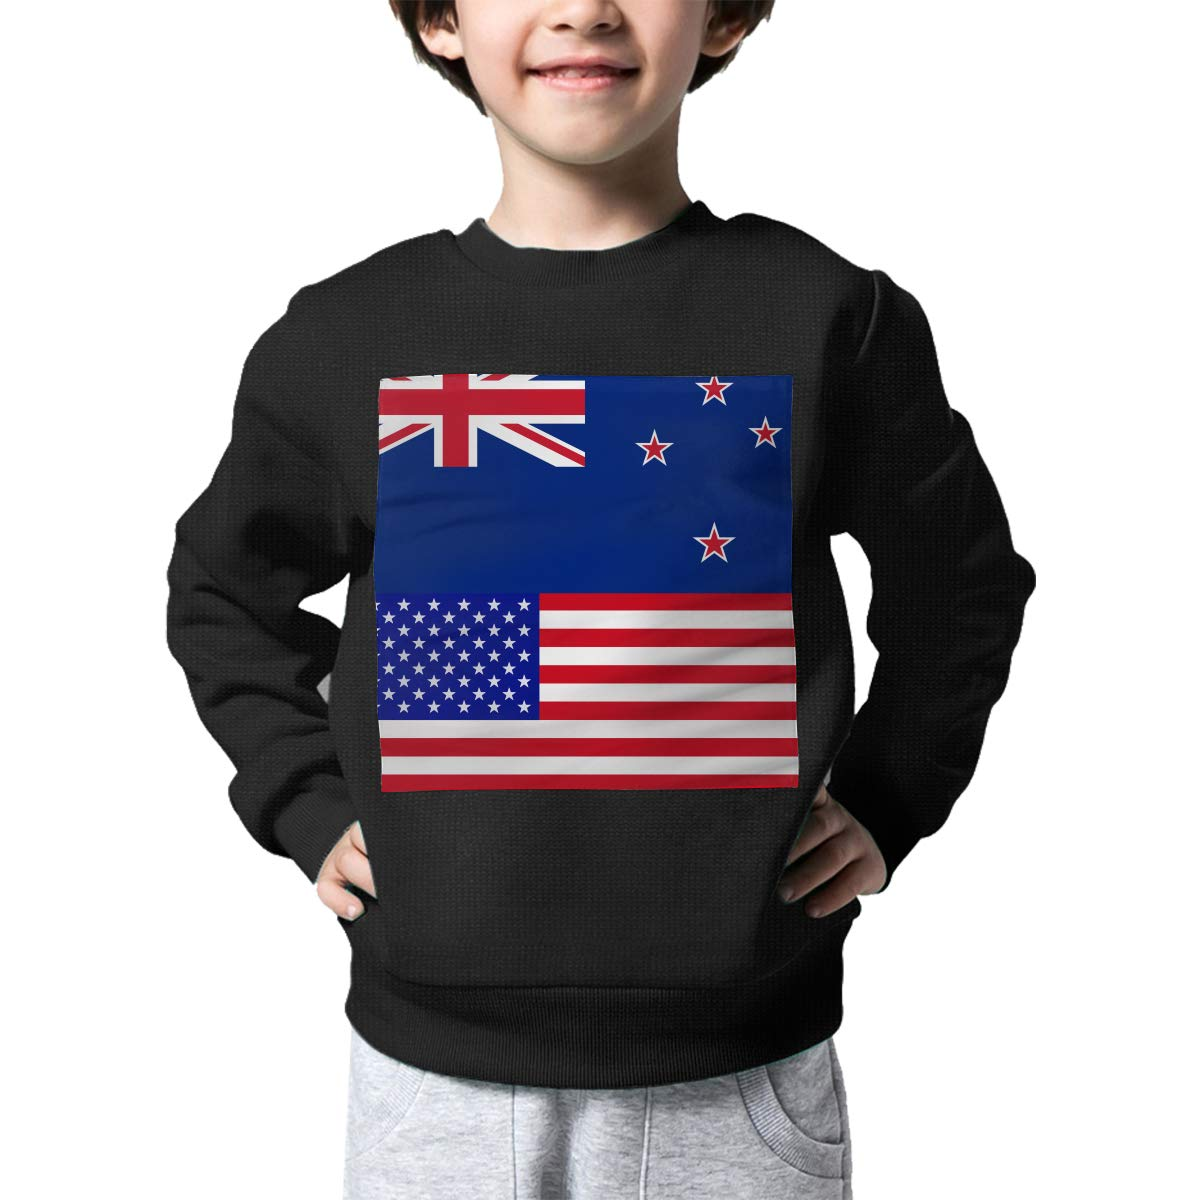 NJKM5MJ Boys Girls New Zealand-American Proud Lovely Sweaters Soft Warm Childrens Sweater